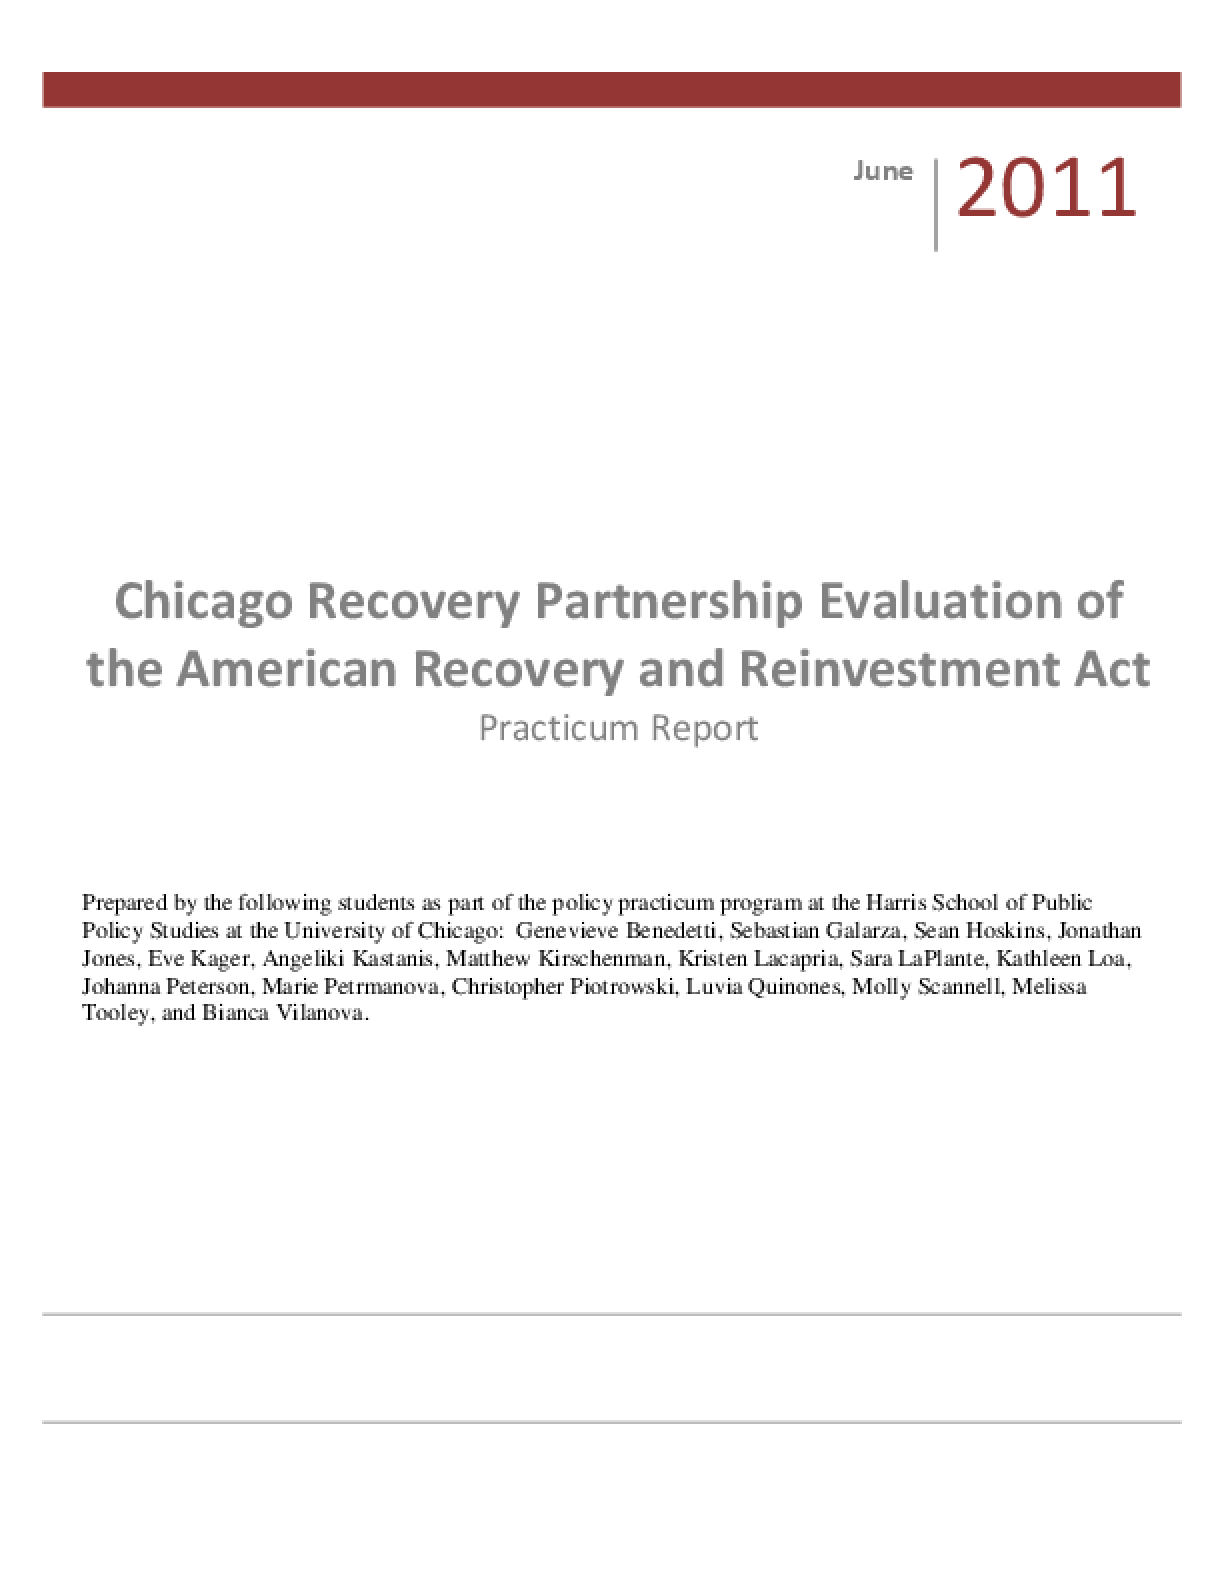 Chicago Recovery Partnership Evaluation of the American Recovery and Reinvestment Act